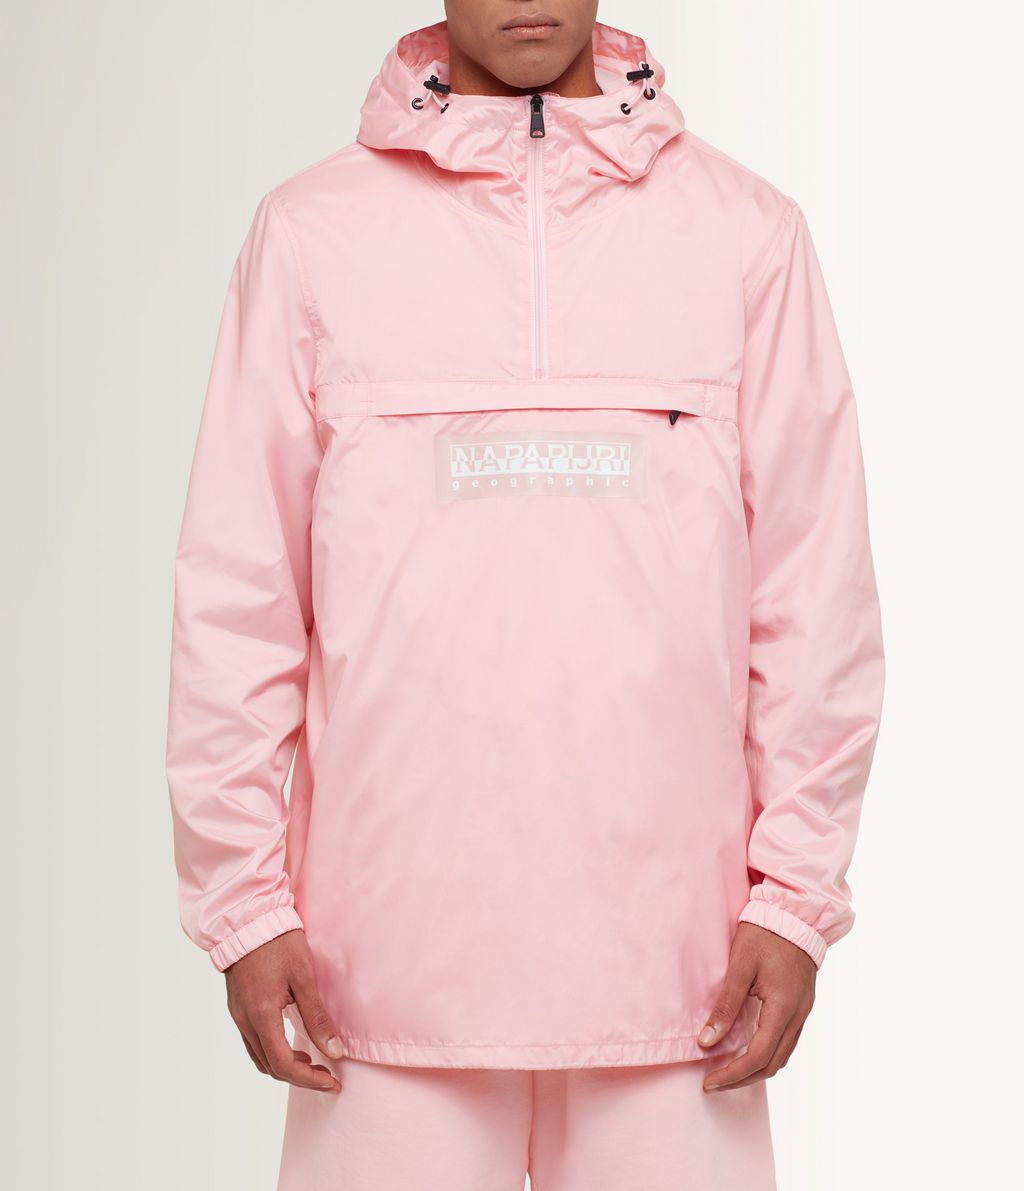 NAPAPIJRI AUMO MAN RAINFOREST,LIGHT PINK